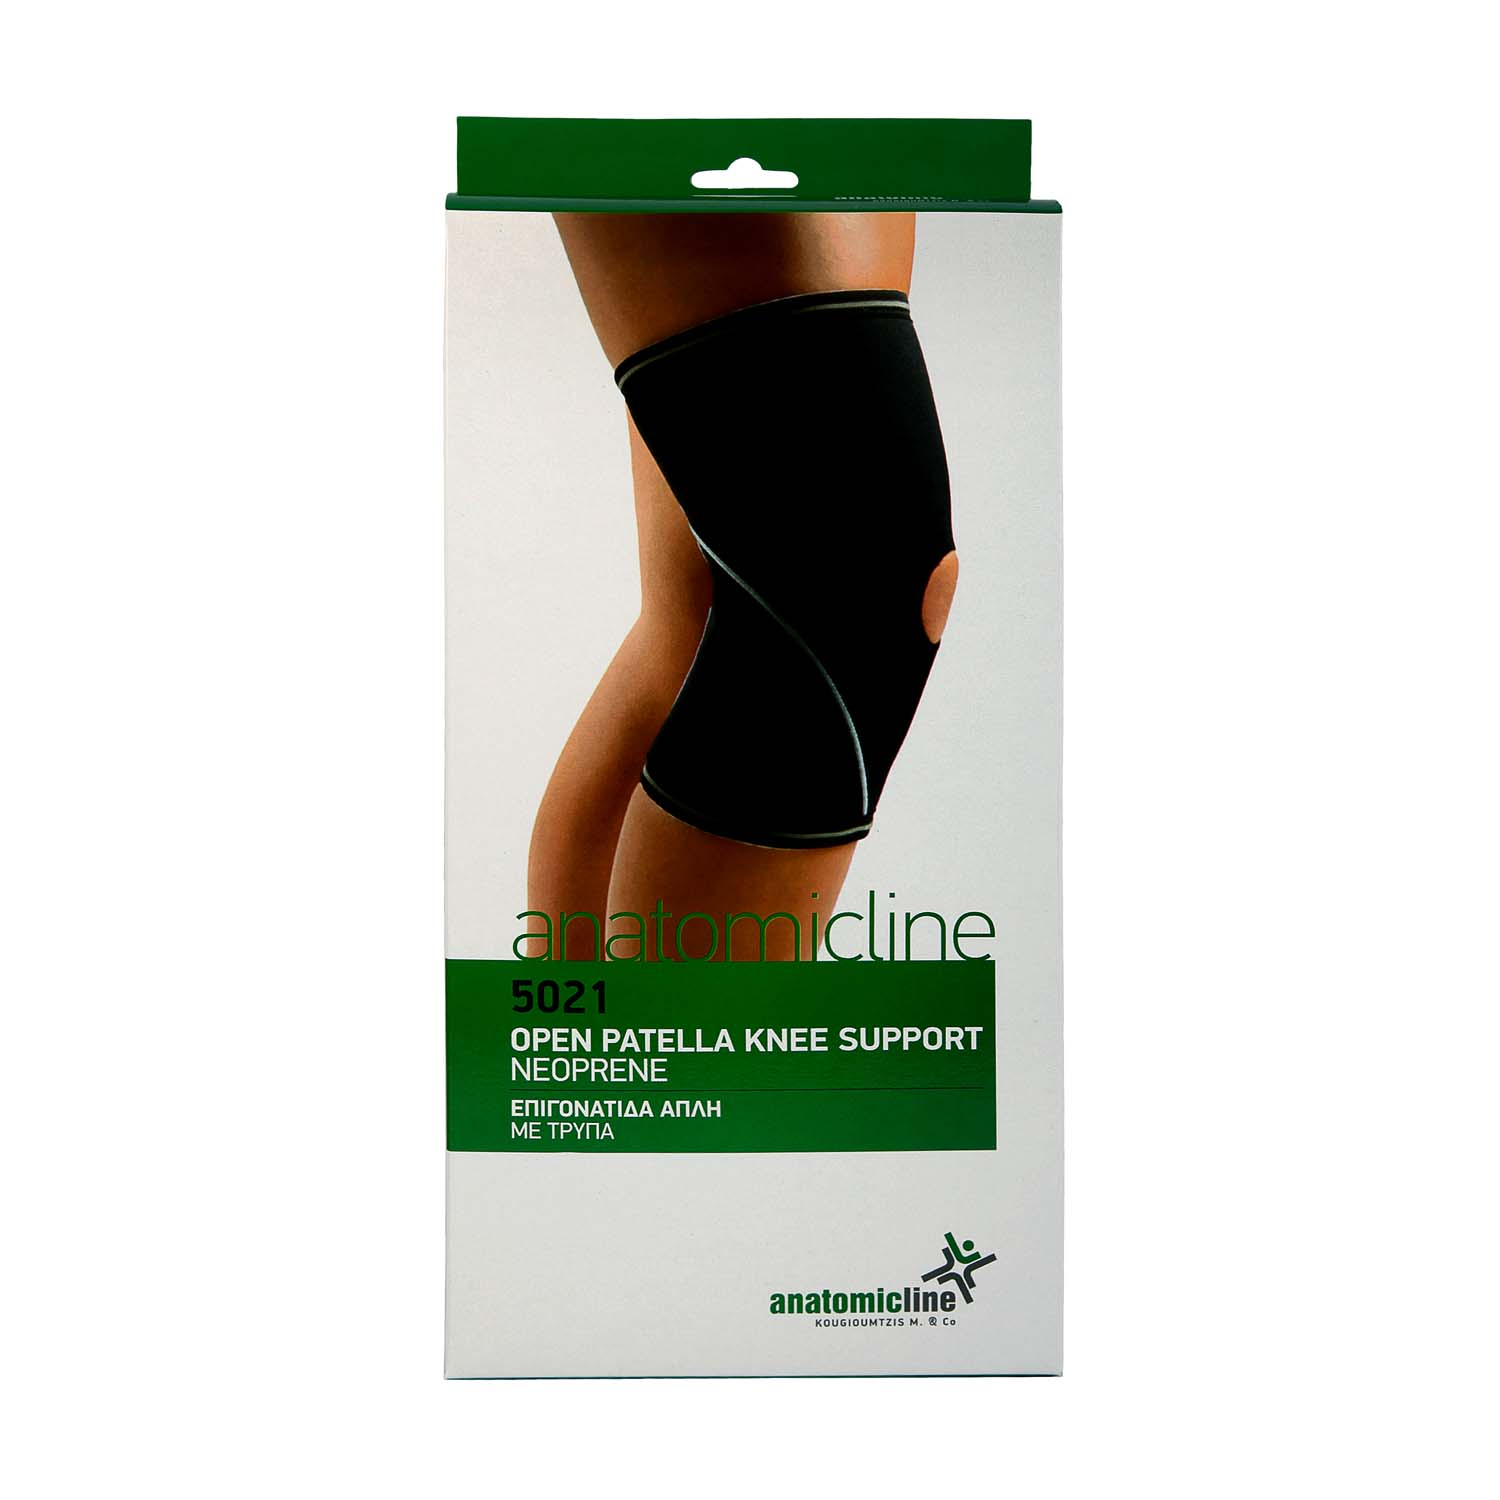 Open patella knee support - Neoprene